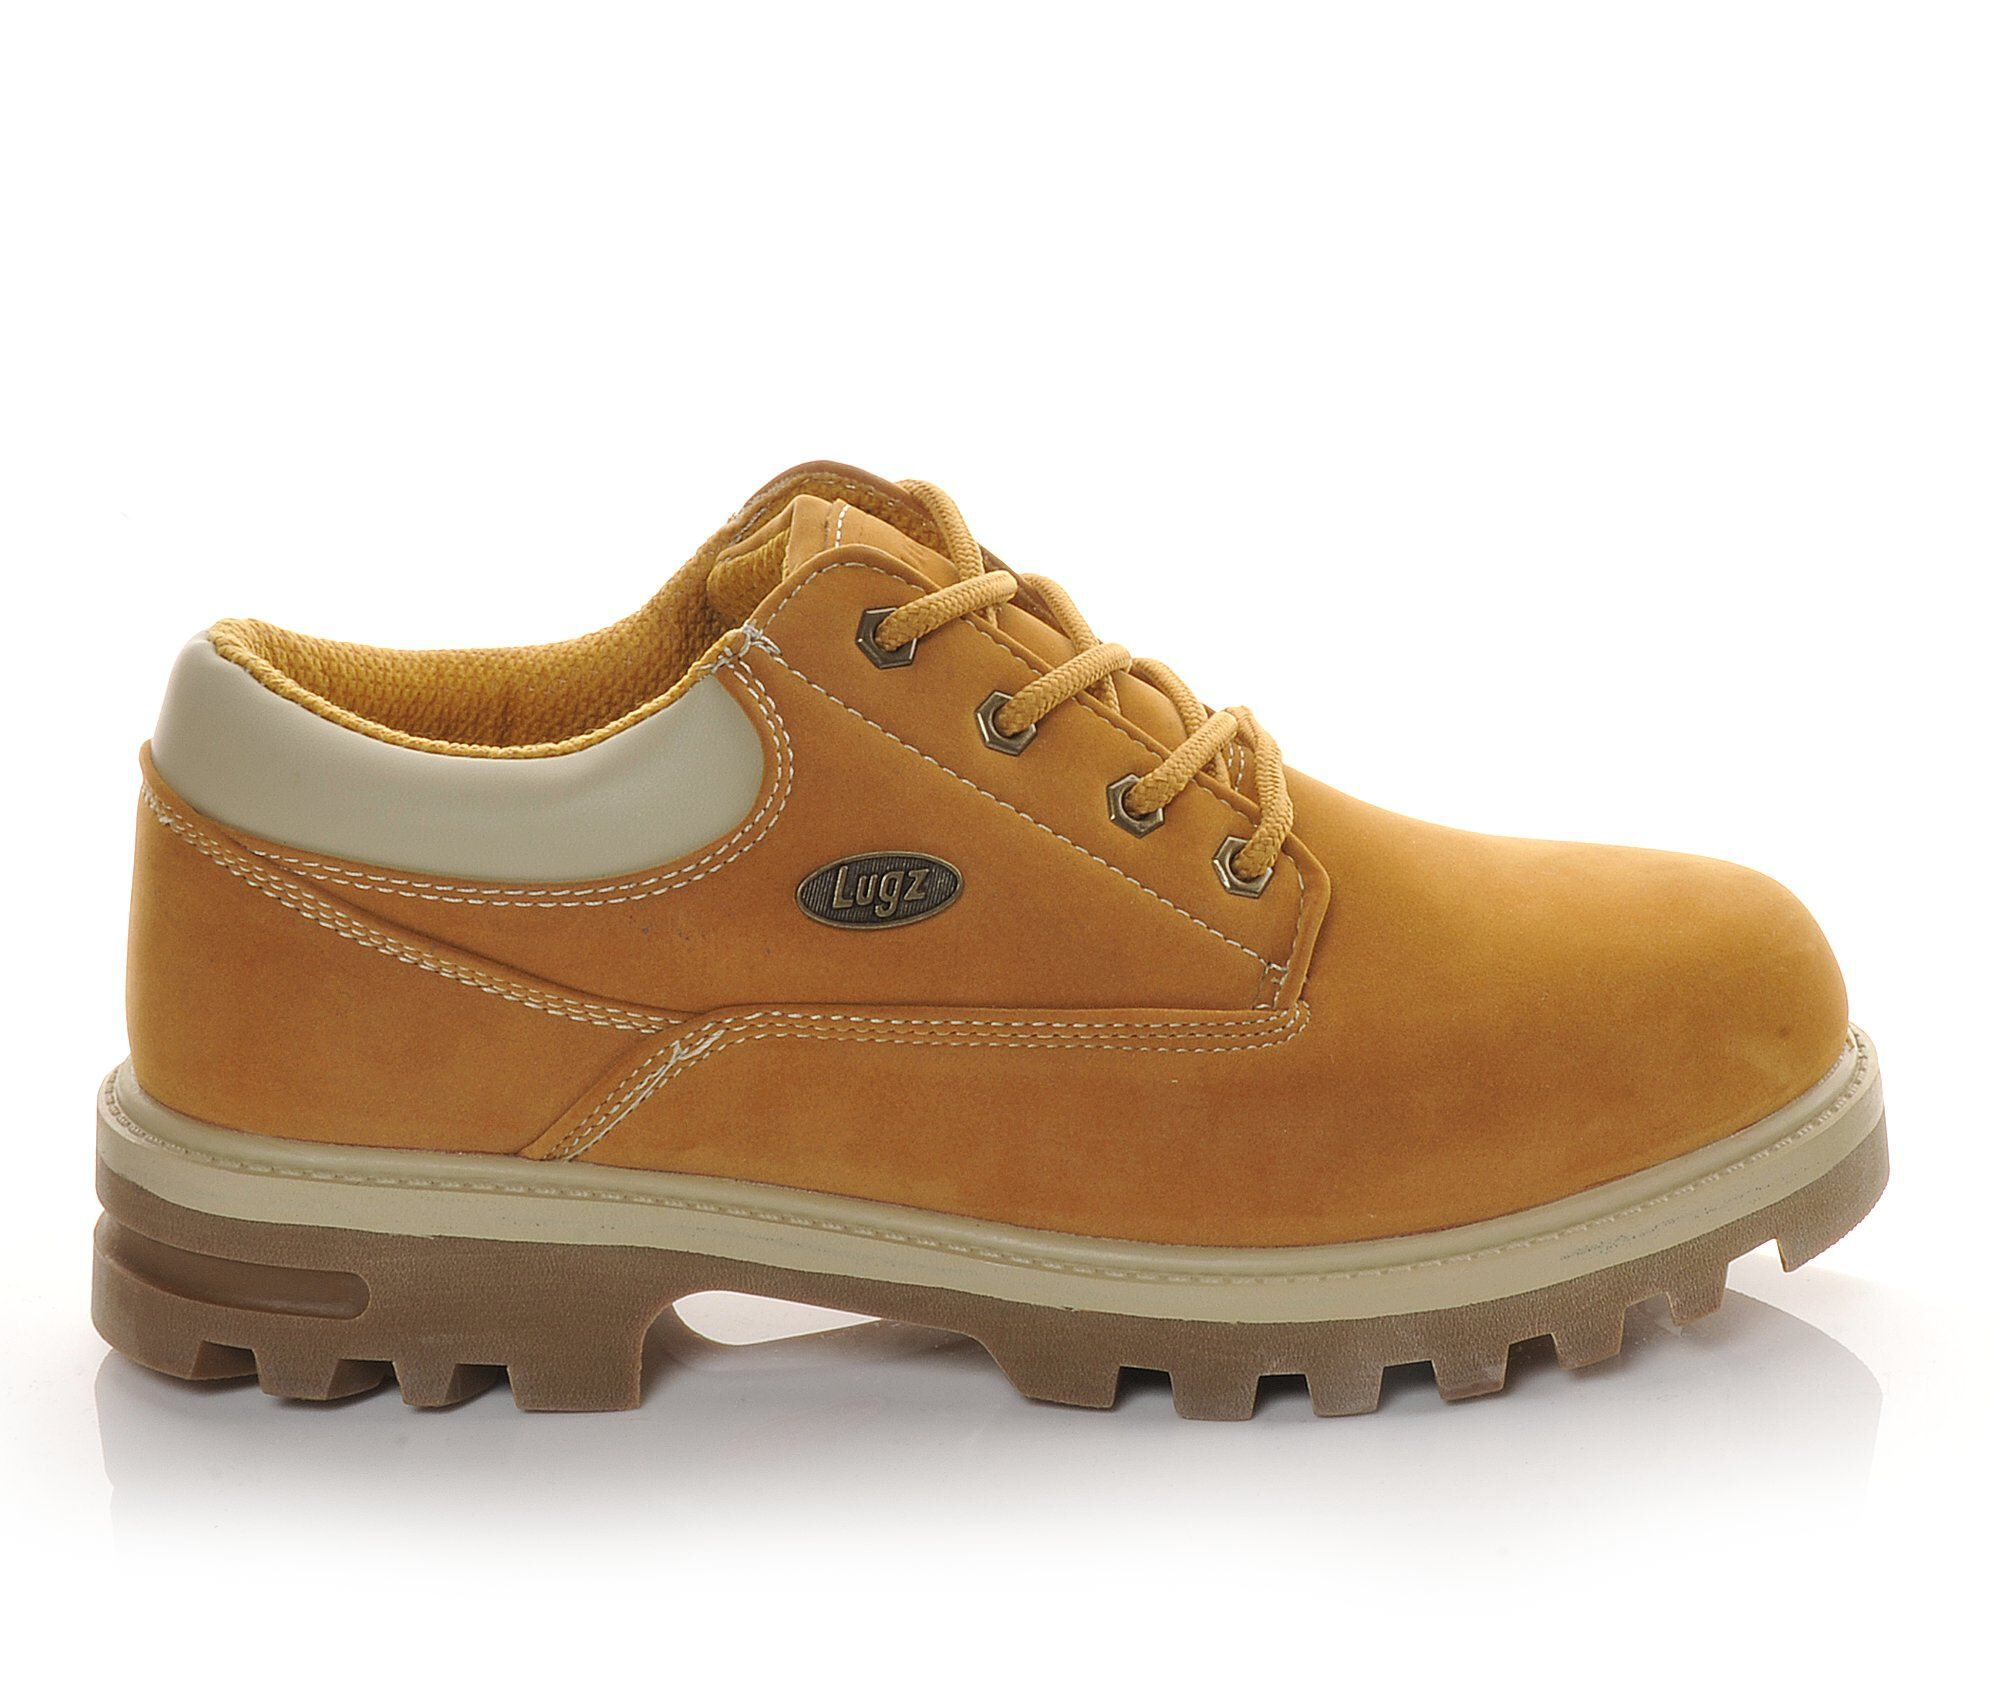 Lugz Shoes Lugz Empire Lo Water Resistant Mens Casual Shoes Wheat/Cream/Gum